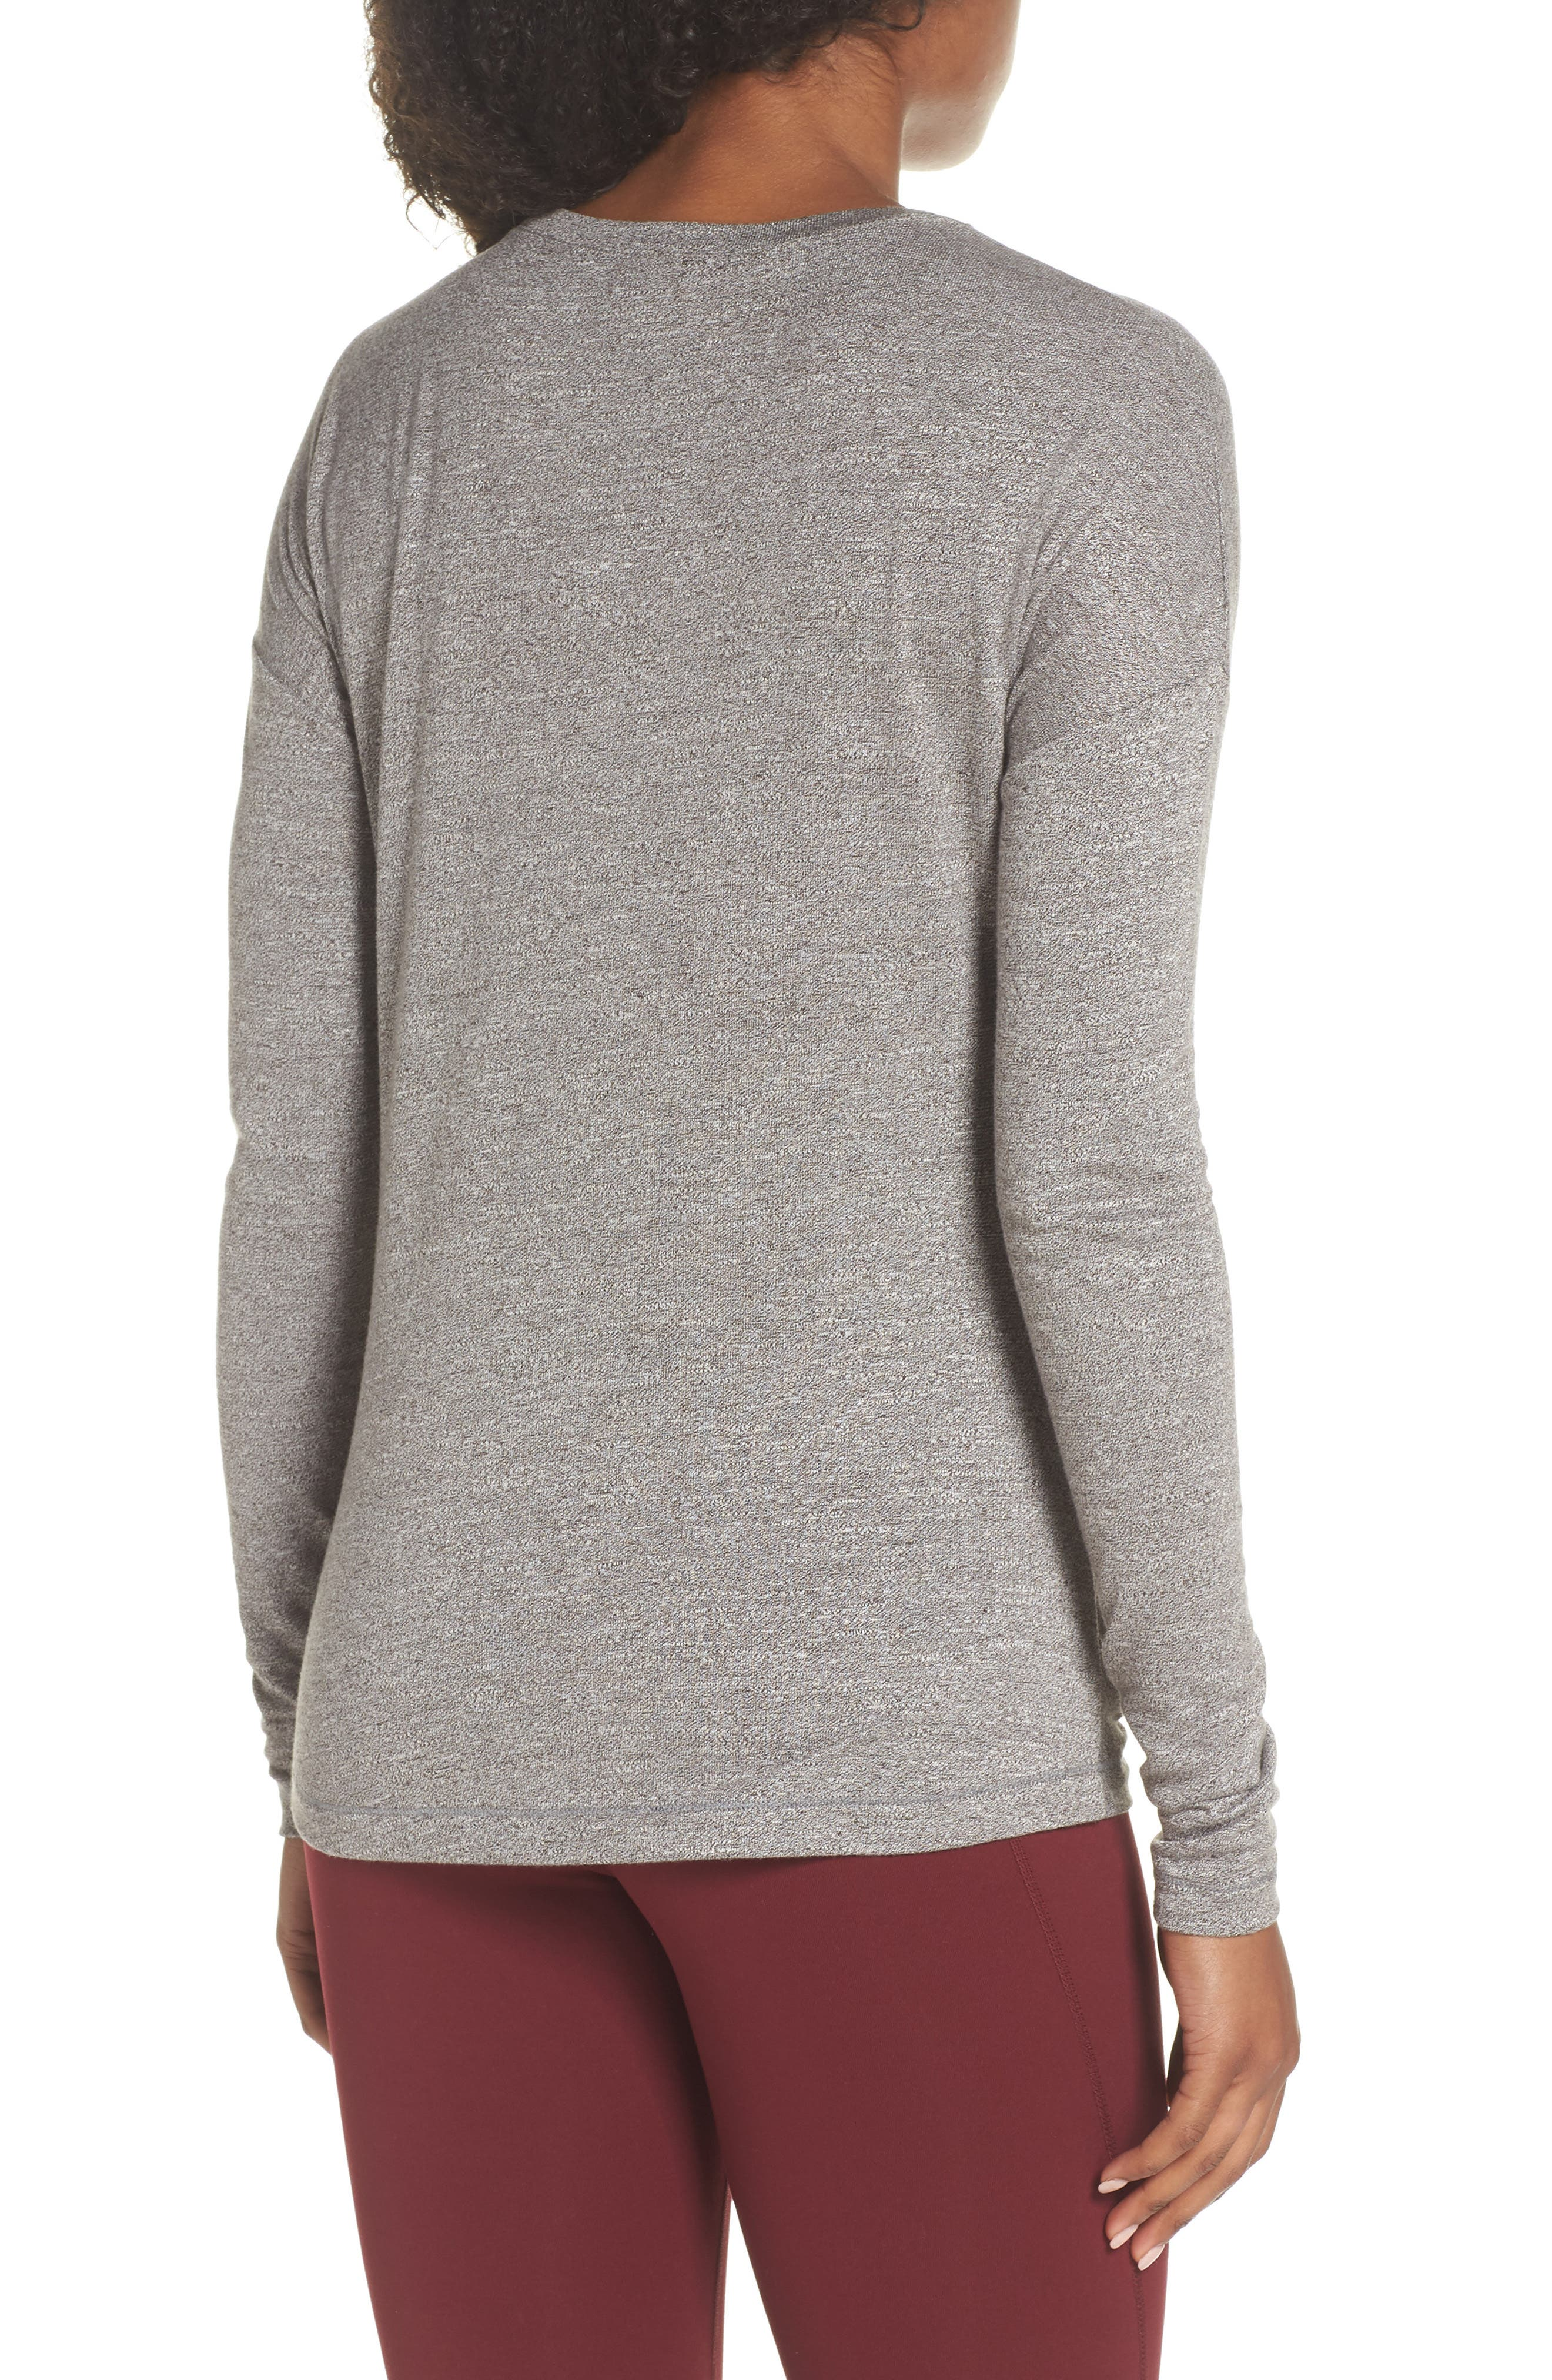 So Graceful Ruched Tee,                             Alternate thumbnail 2, color,                             GREY DARK HEATHER